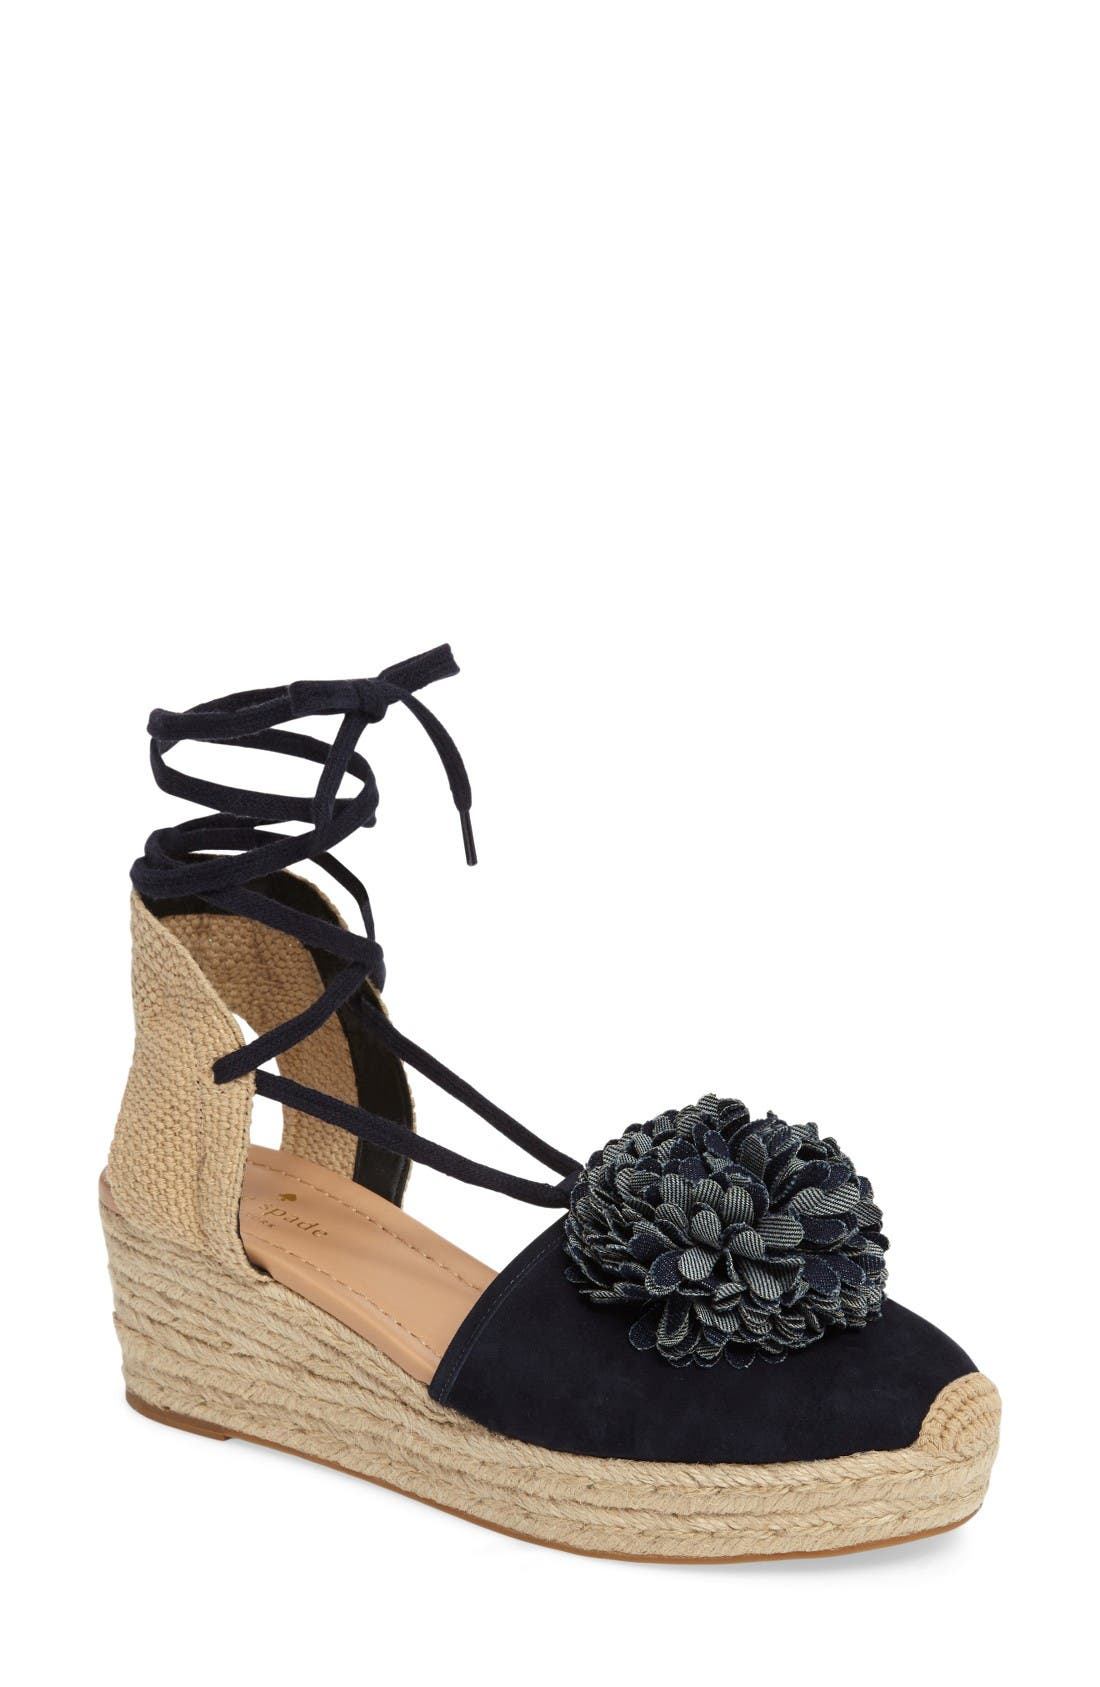 Alternate Image 1 Selected - kate spade new york lafayette wedge espadrille (Women)